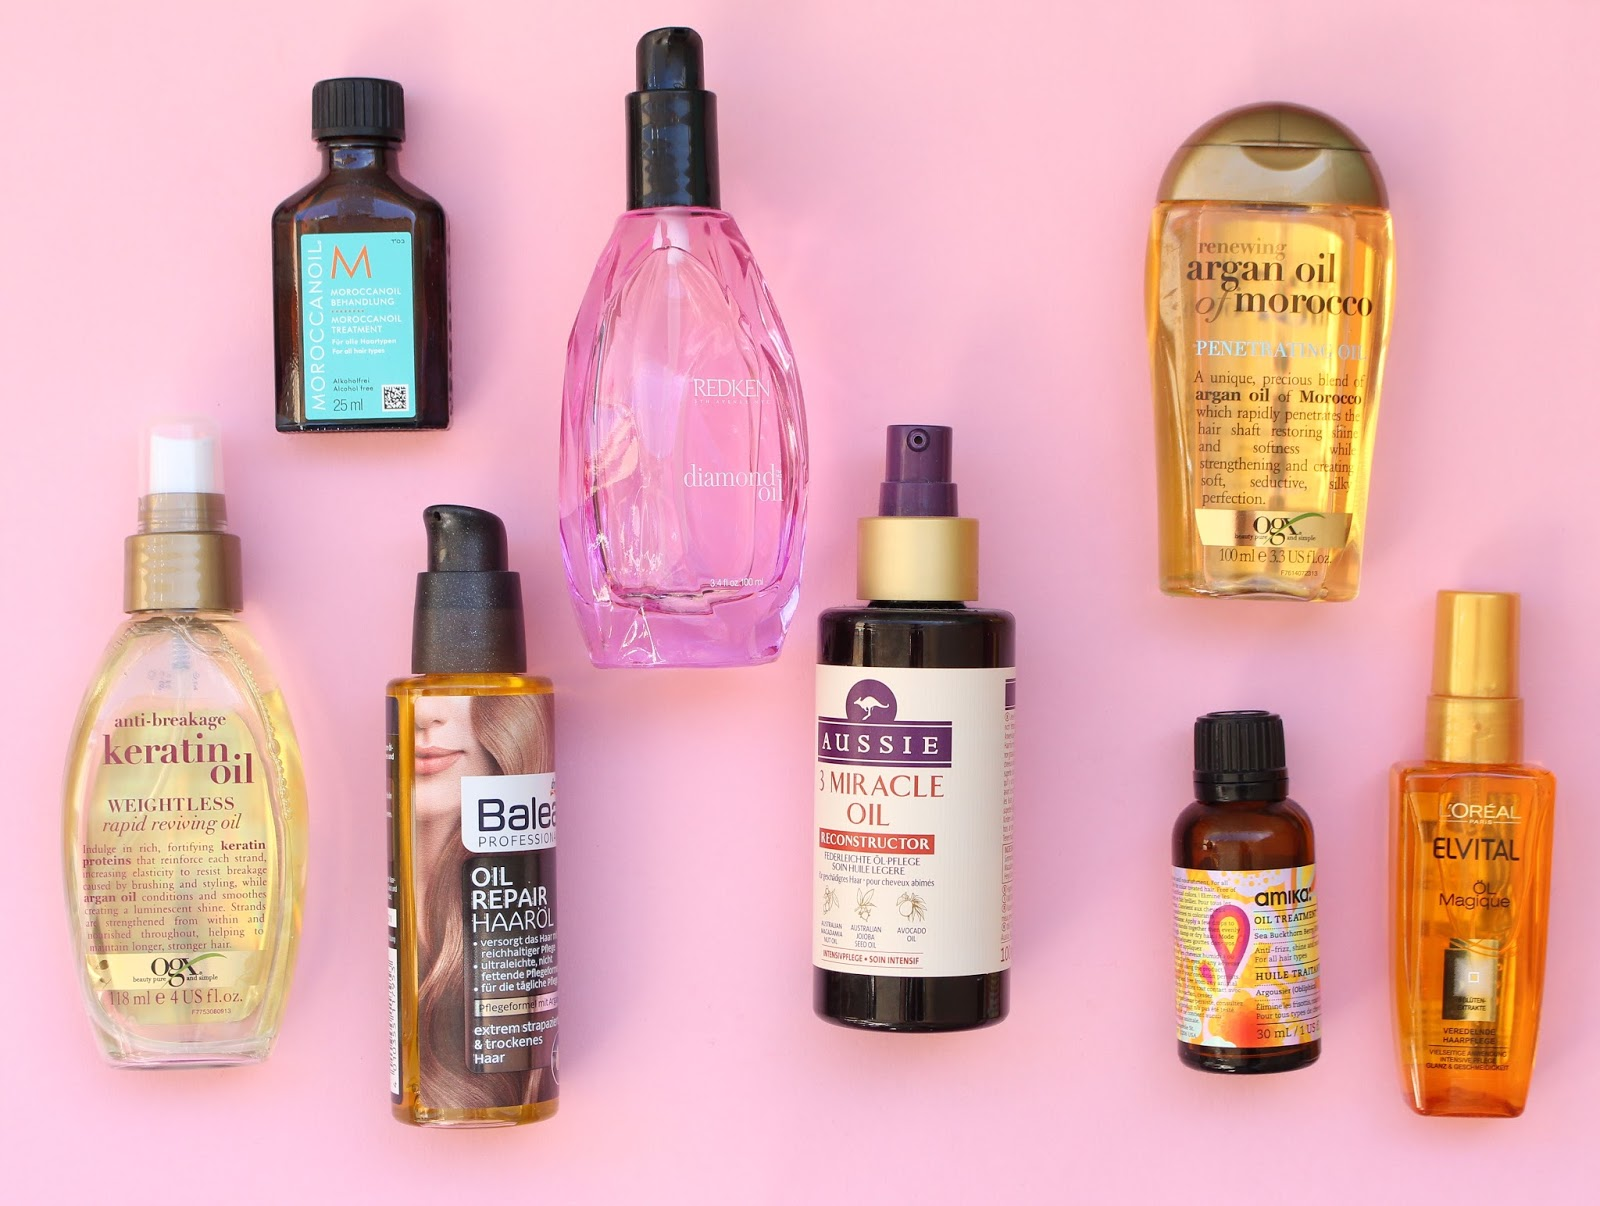 hair oil love another kind of beauty blog